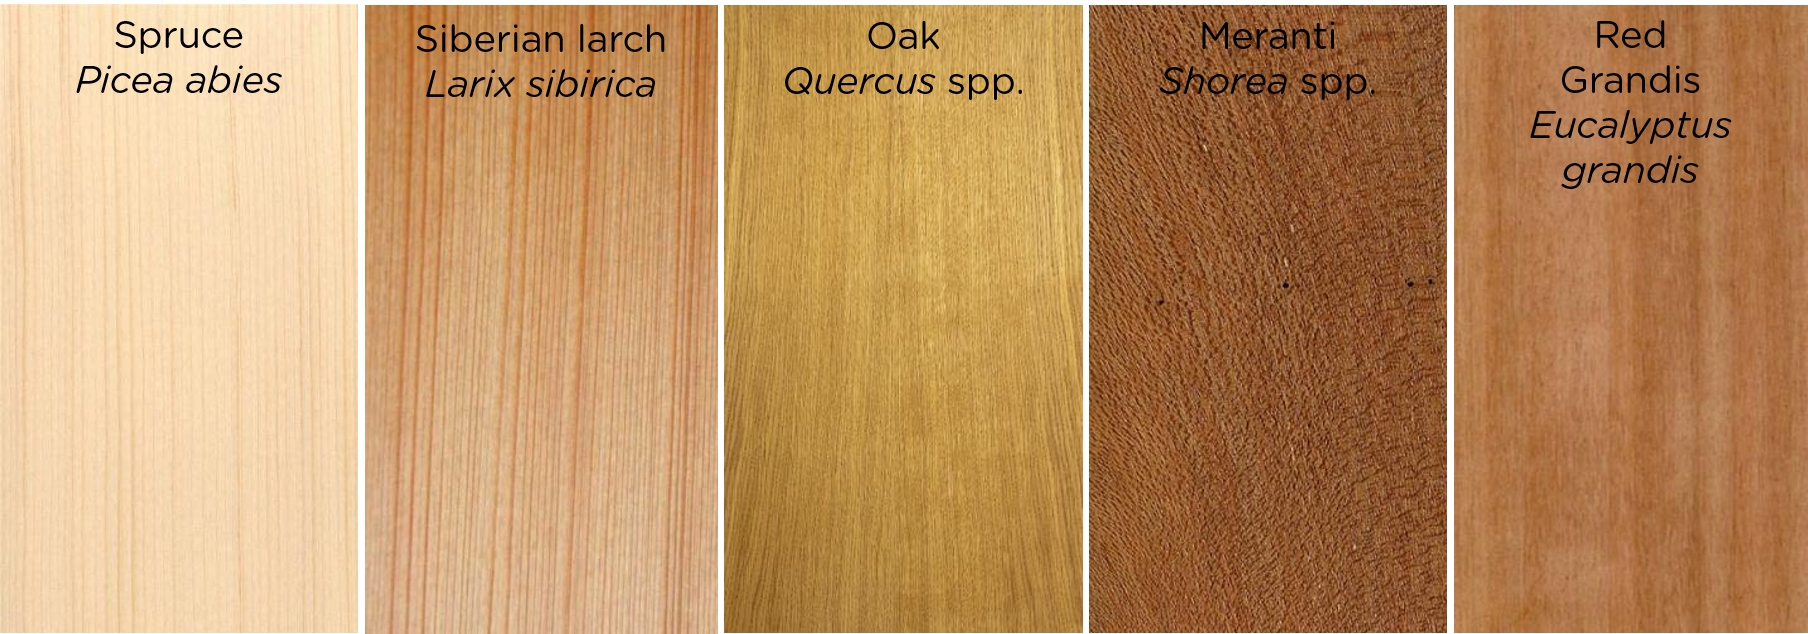 The Truth About The Origin Of Wood In Windows